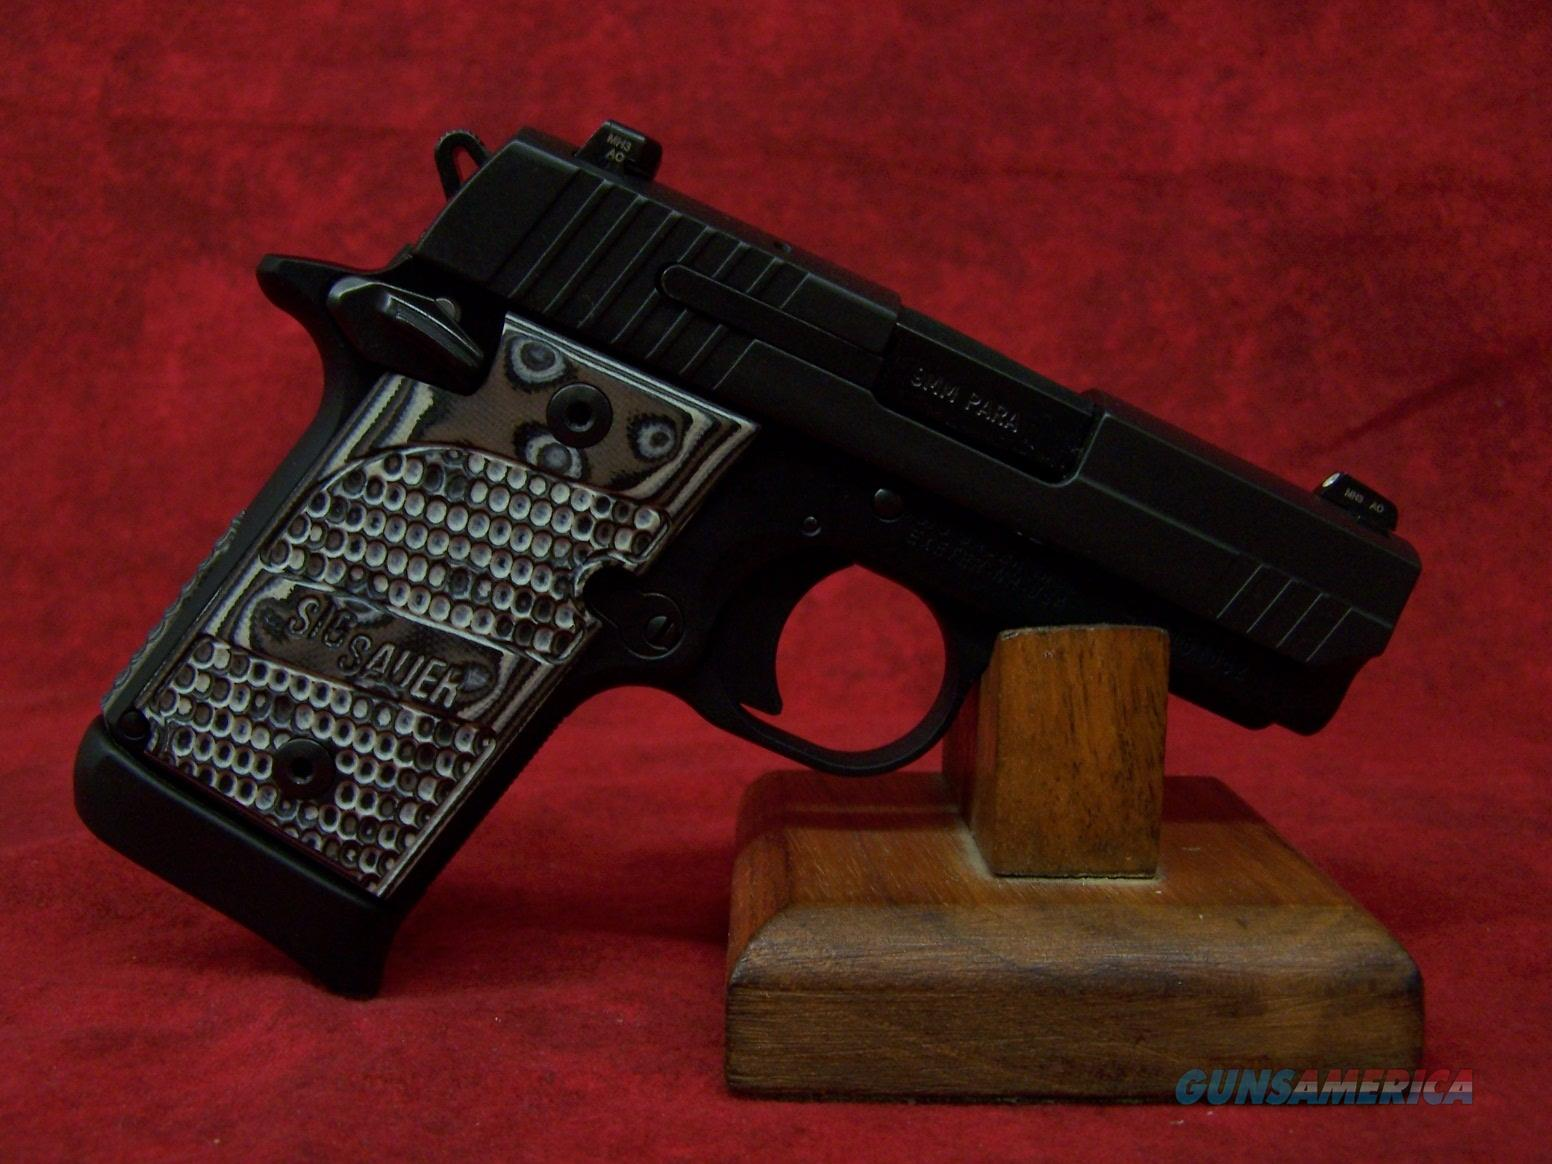 Sig Sauer P938 Extreme Night Sight 9mm (938-9-XTM-BLKGRY-AMBI)  Guns > Pistols > Sig - Sauer/Sigarms Pistols > Other